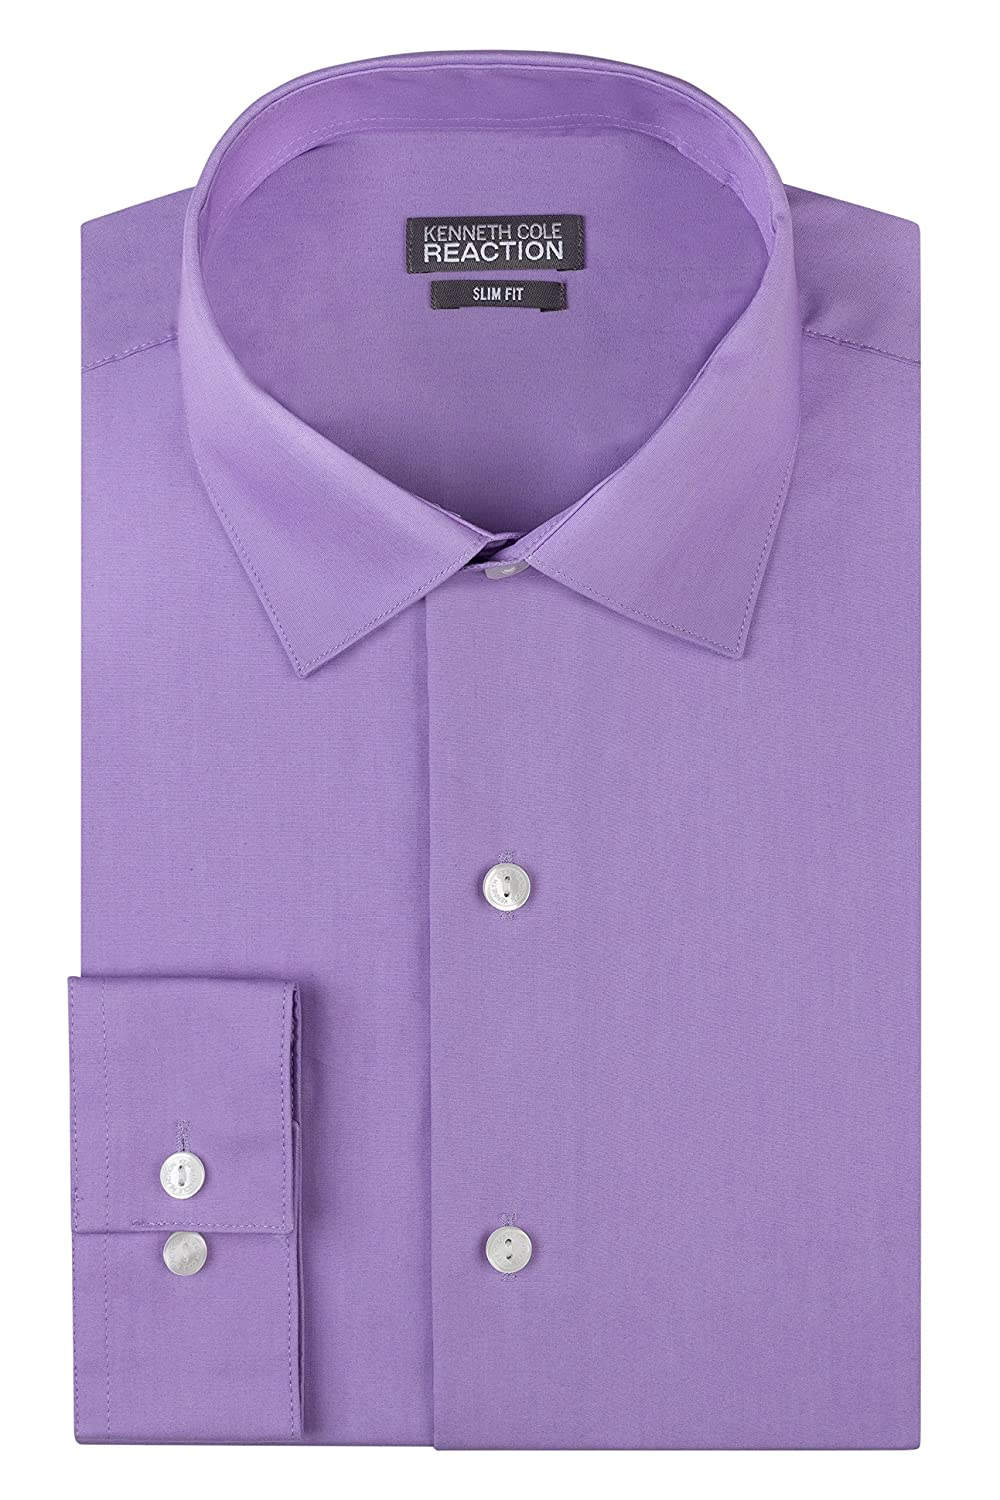 Kenneth Cole Mens Dress Shirts Slim Fit Solid Chambray Spread Collar